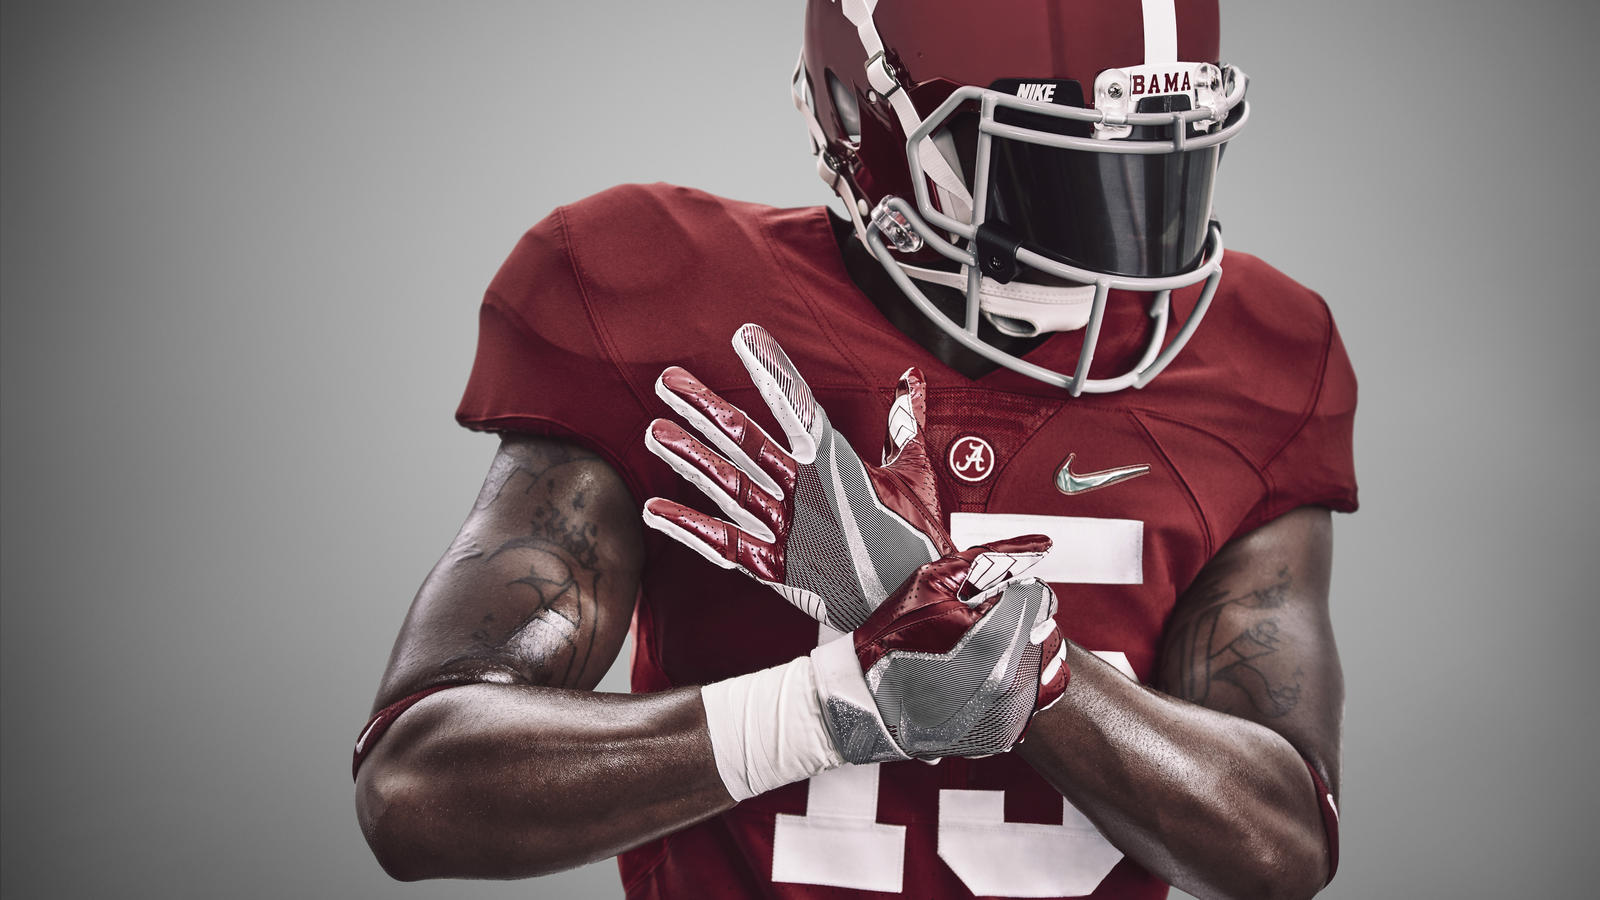 Nike College Football Wallpaper: Nike Reveals College Football Playoff Uniform Looks